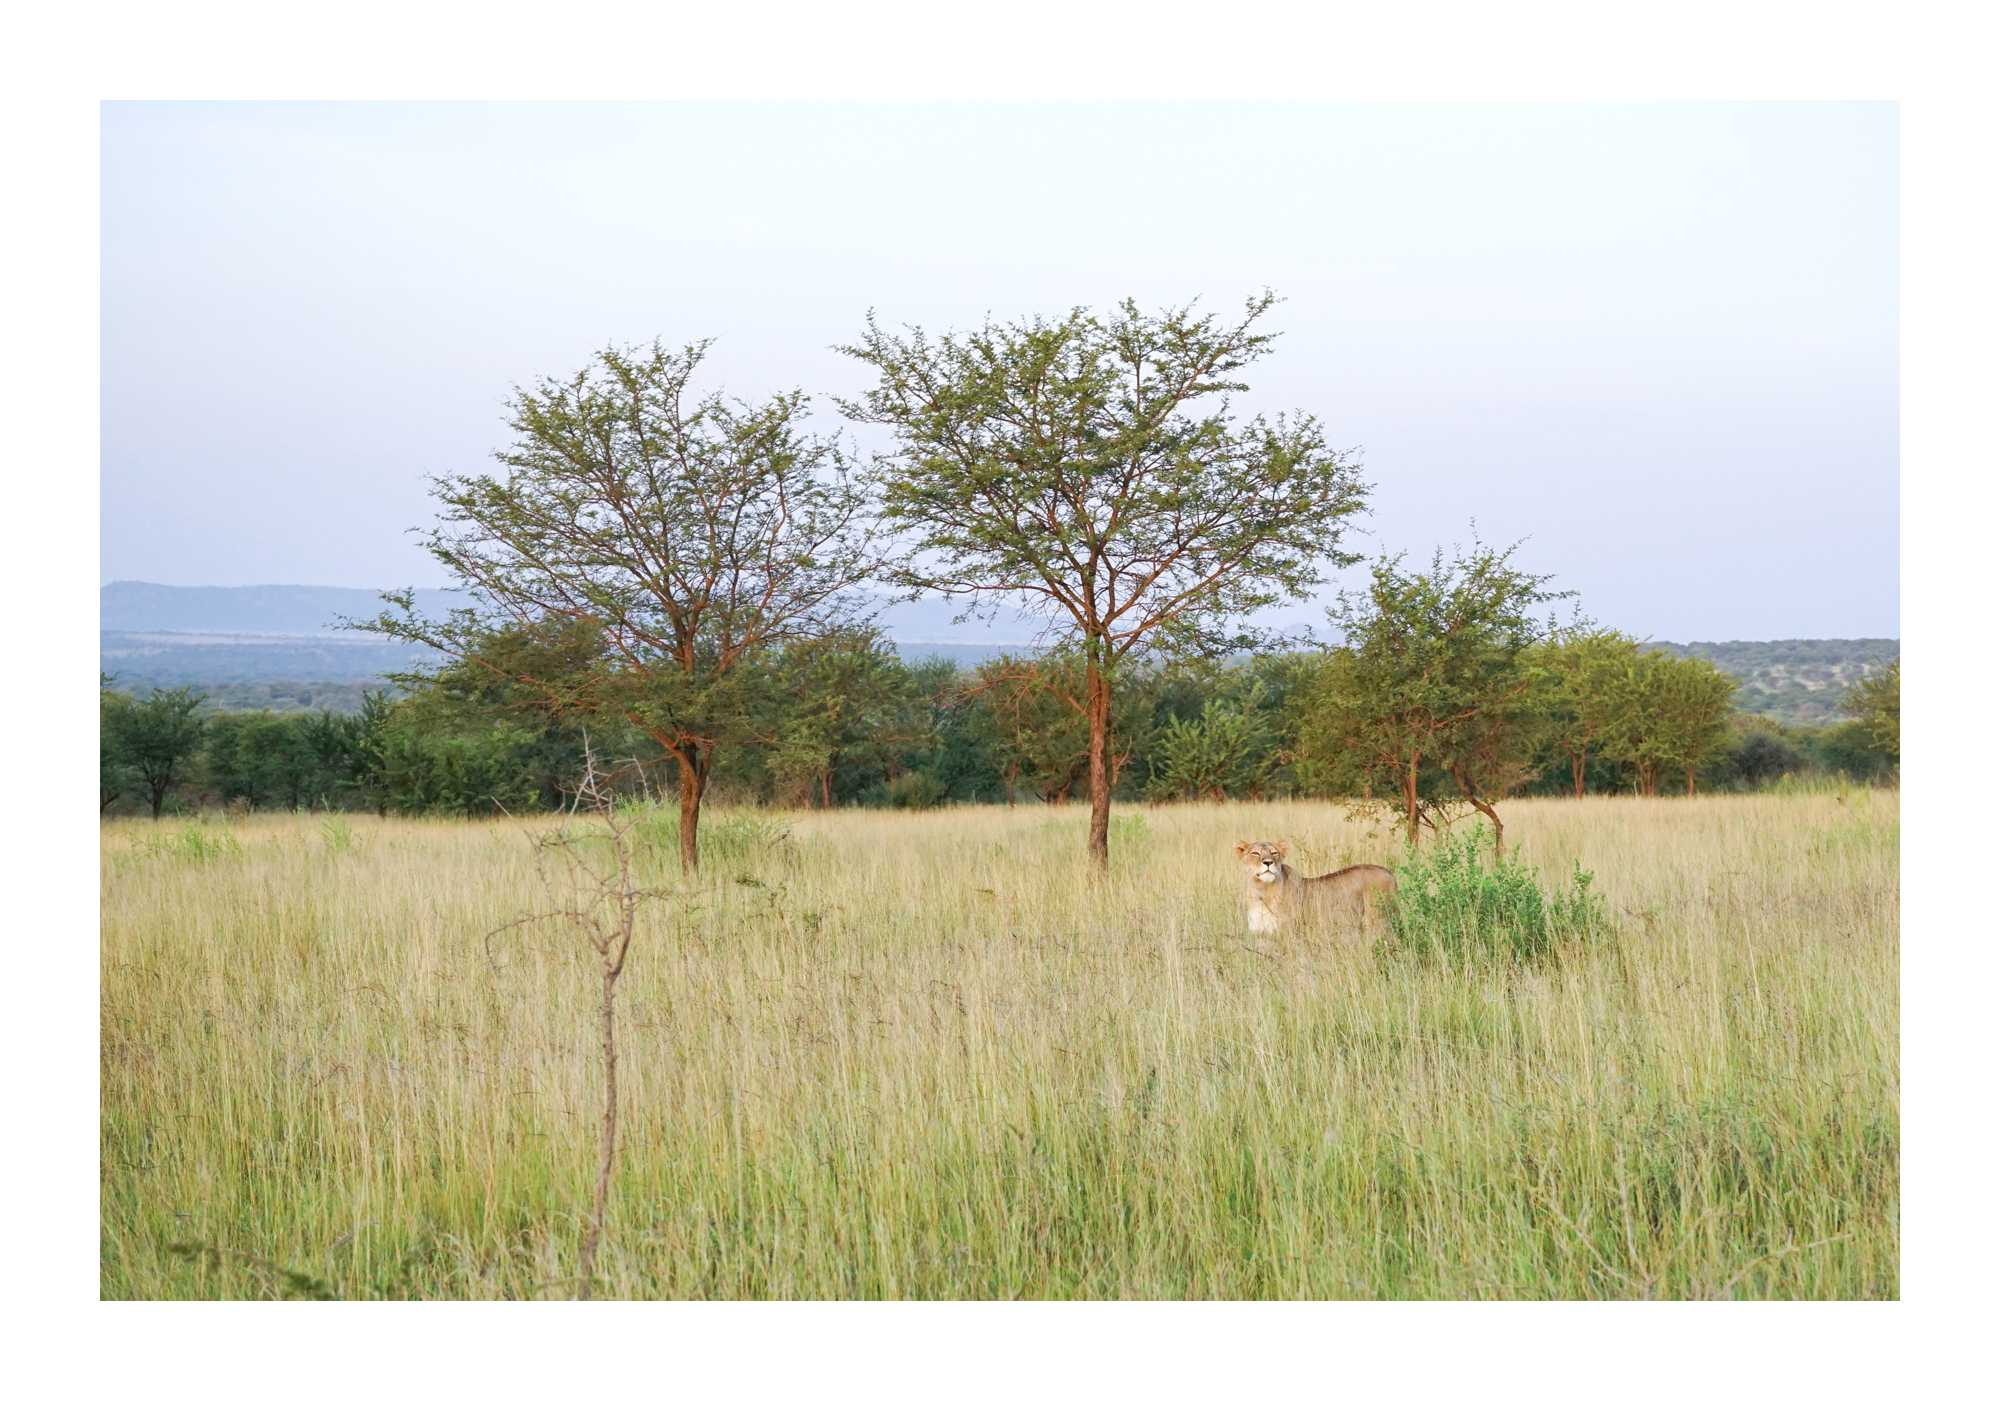 Lioness hunting at dawn in Serengenti, Tanzania